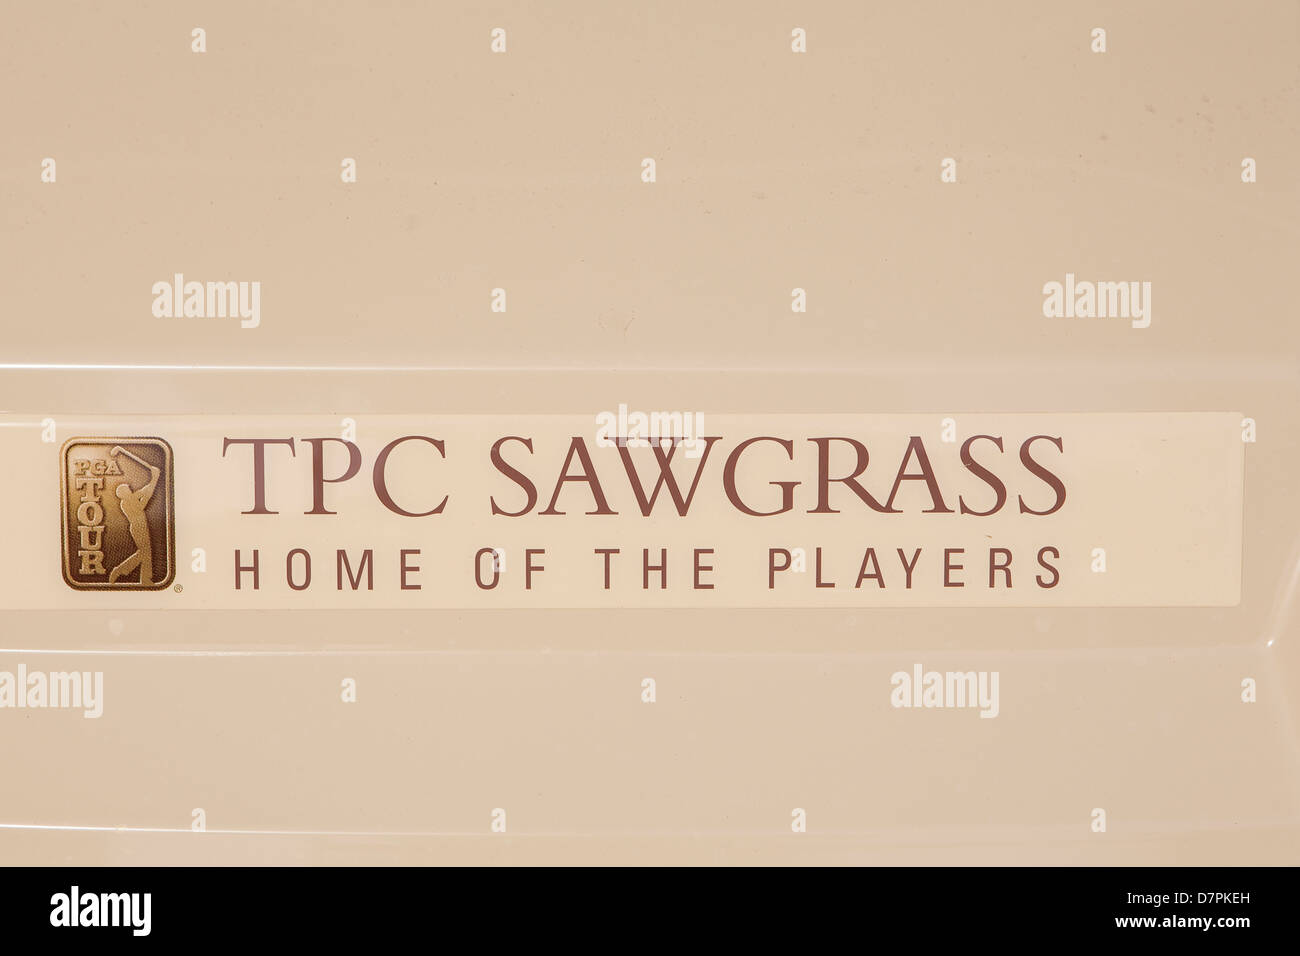 The logo of TPC Sawgrass is pictured on a golf cart in Ponte Vedra Beach, Florida - Stock Image